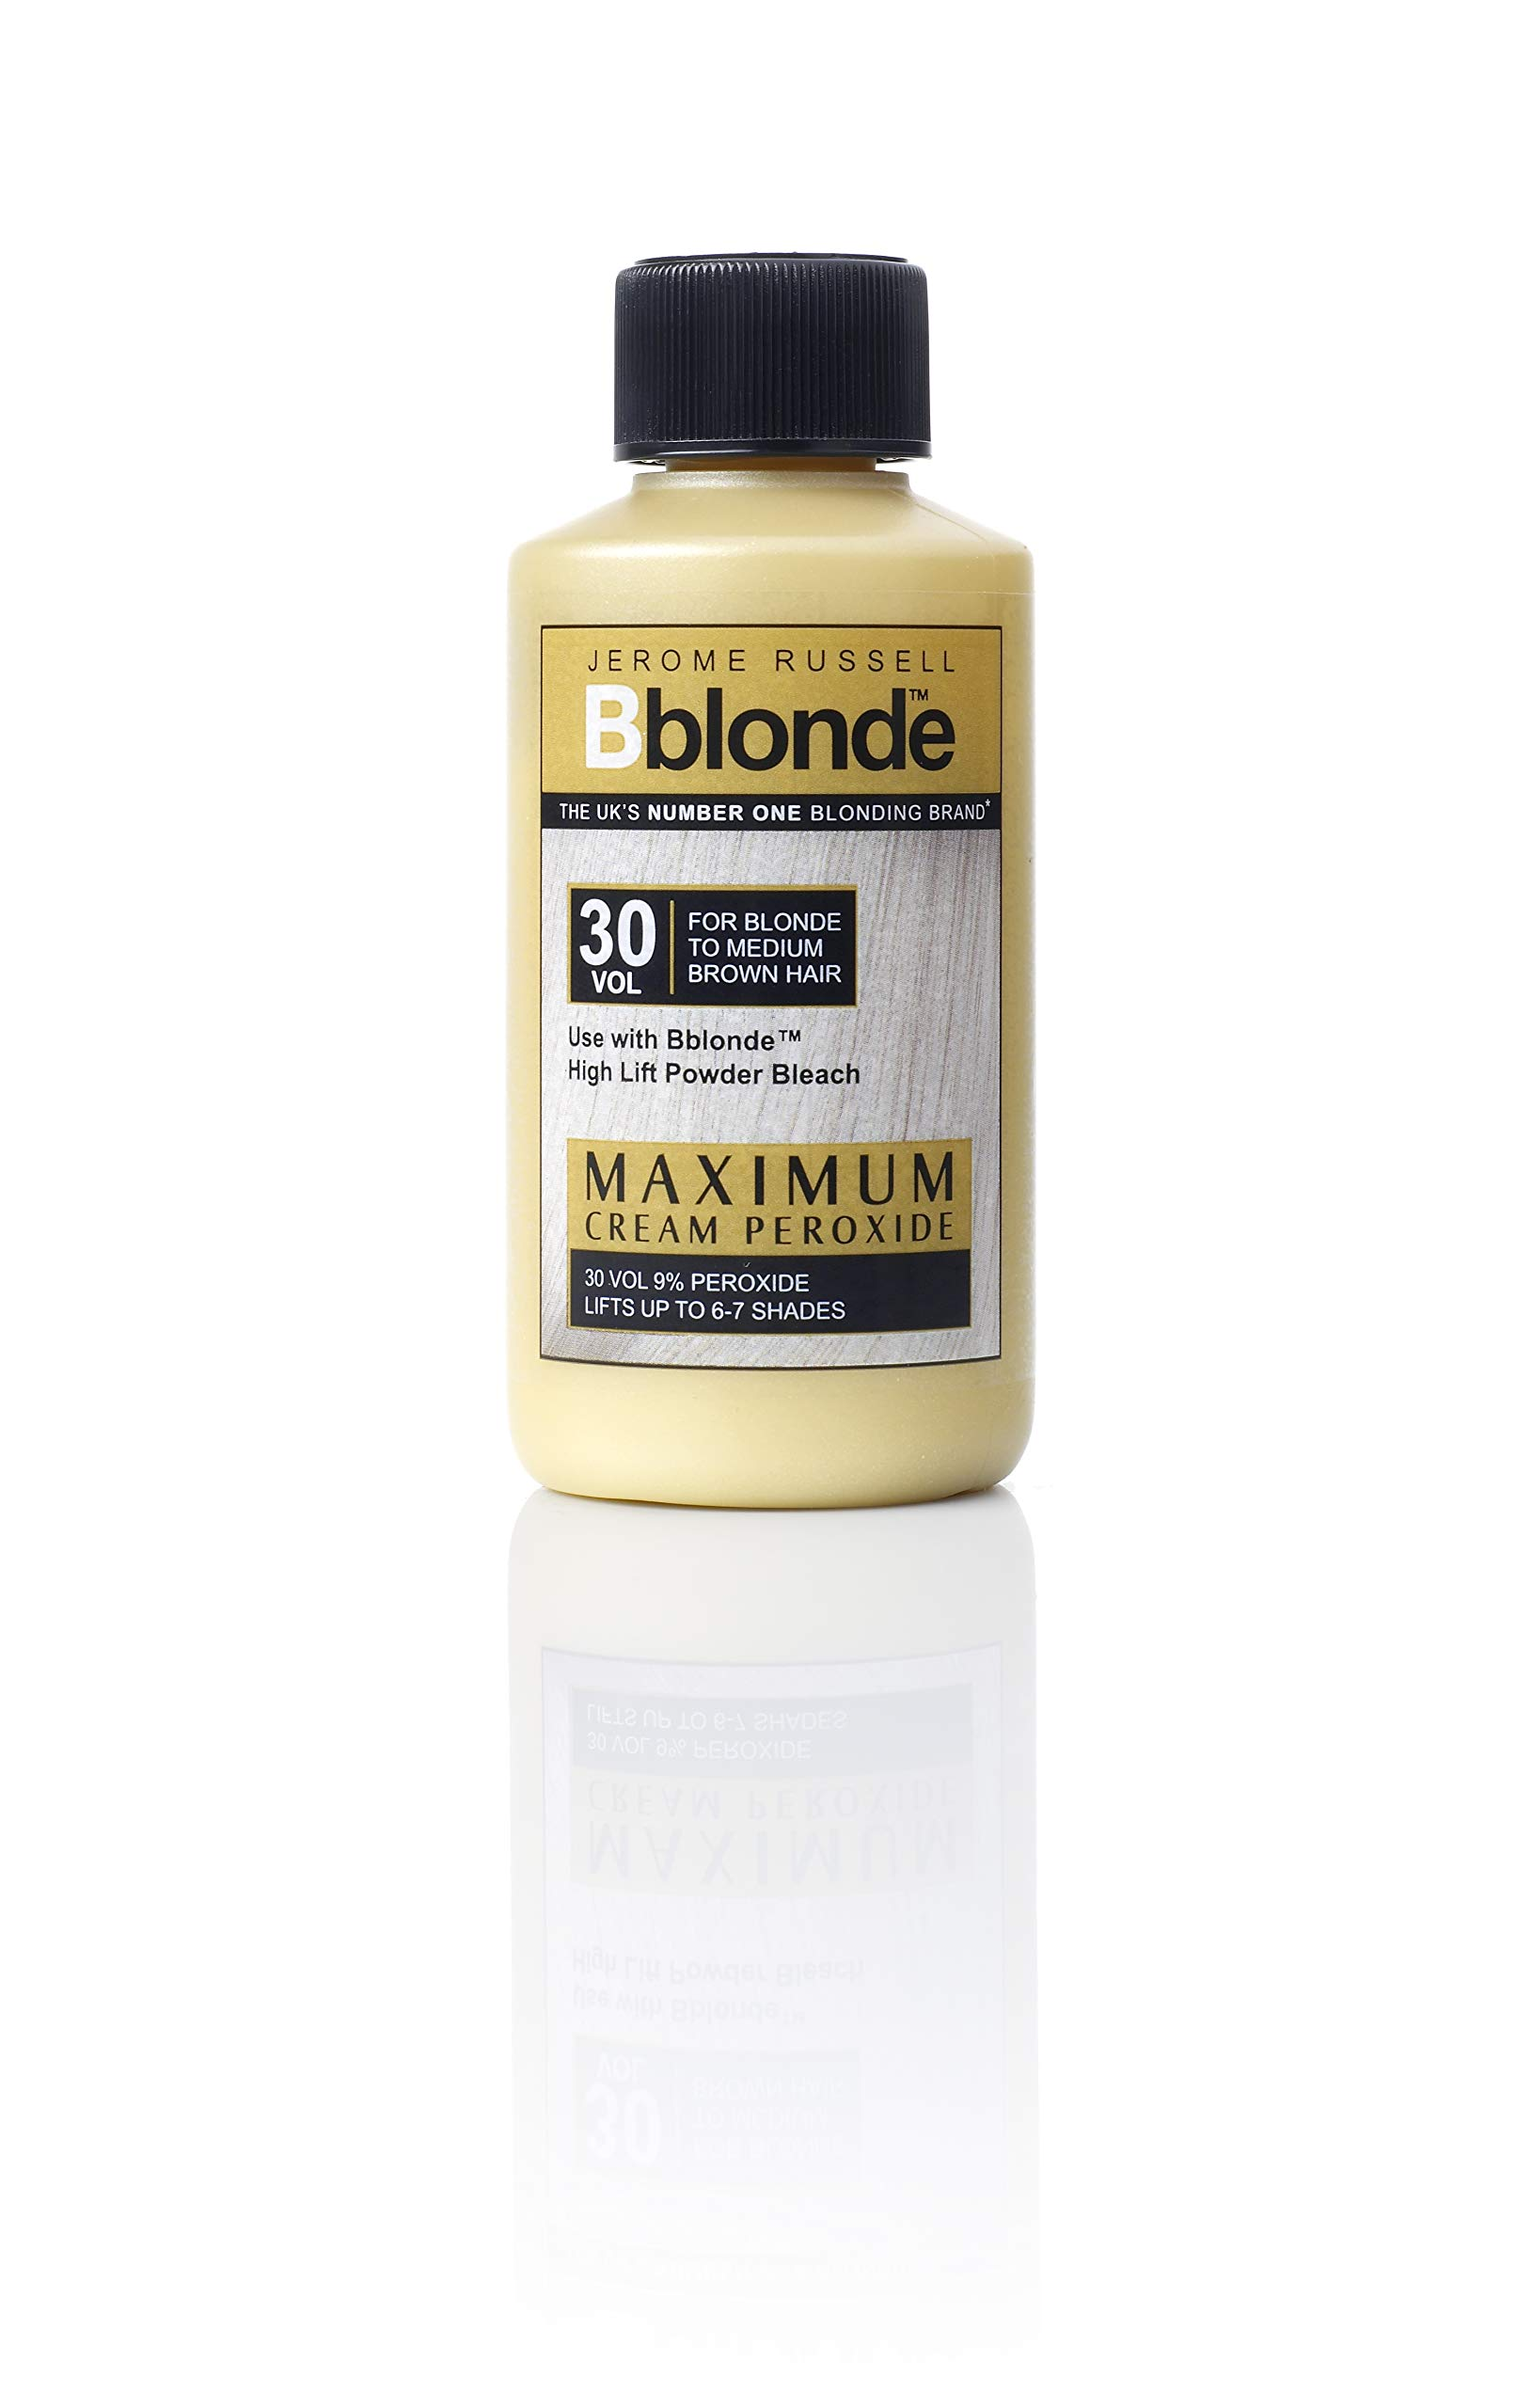 Jerome Russell Bblonde Maximum Lift Cream Peroxide 30 Vol(Packaging May Vary)